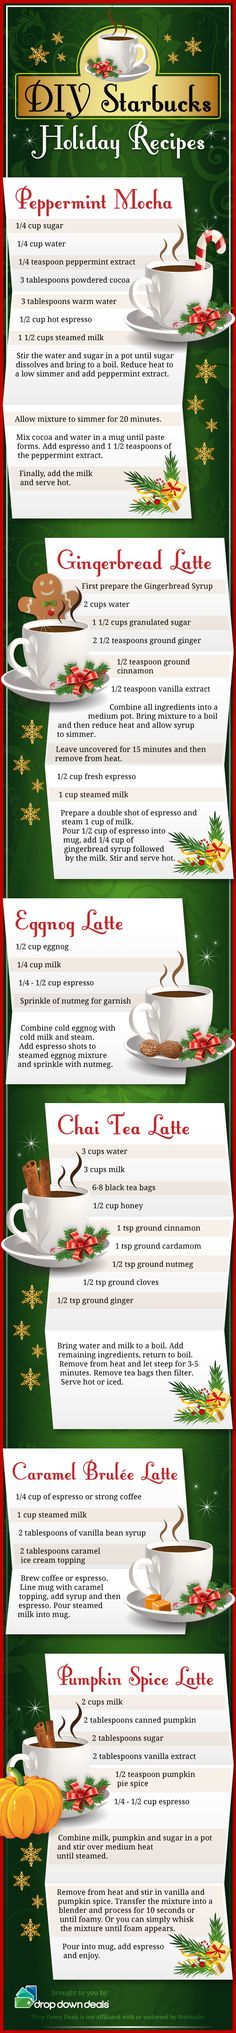 DIY Starbucks Holiday Drink Recipes - good to know!